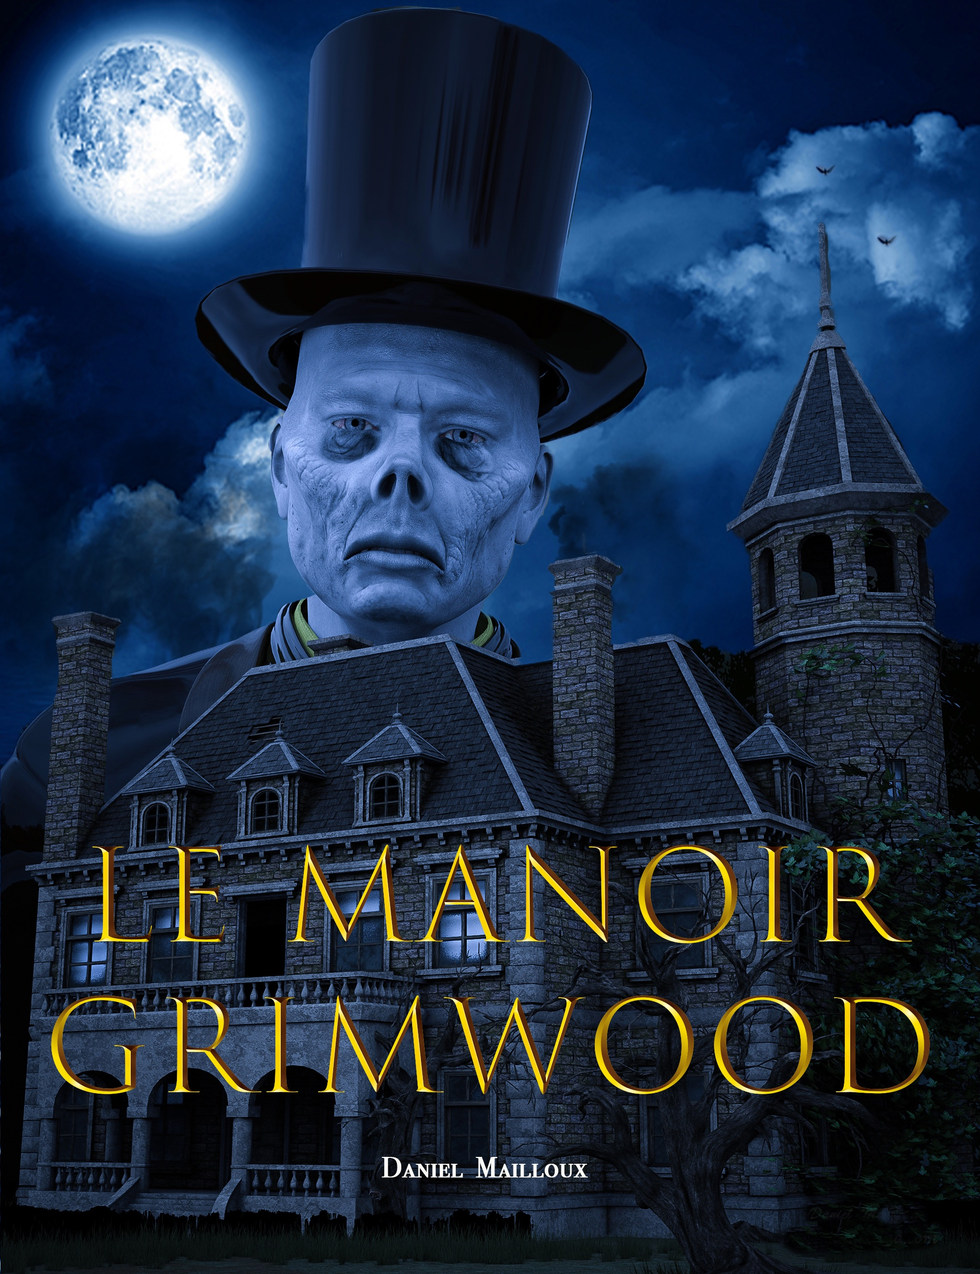 Le manoir grimwood